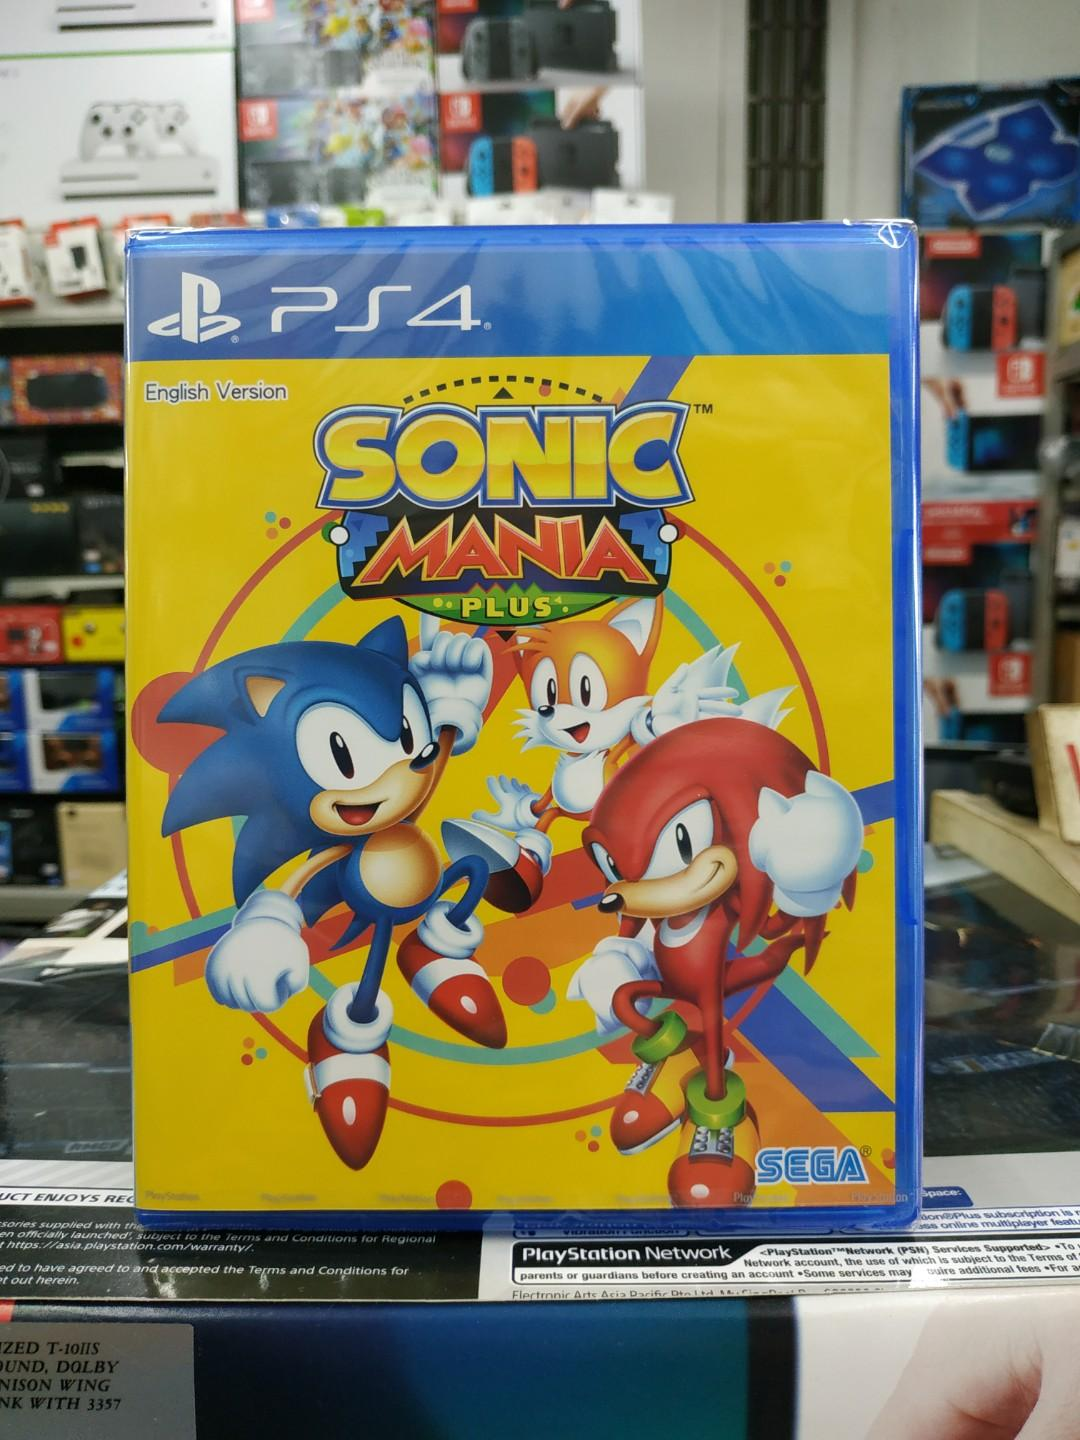 🆕 PS4 Sonic Mania Plus, Toys & Games, Video Gaming, Video